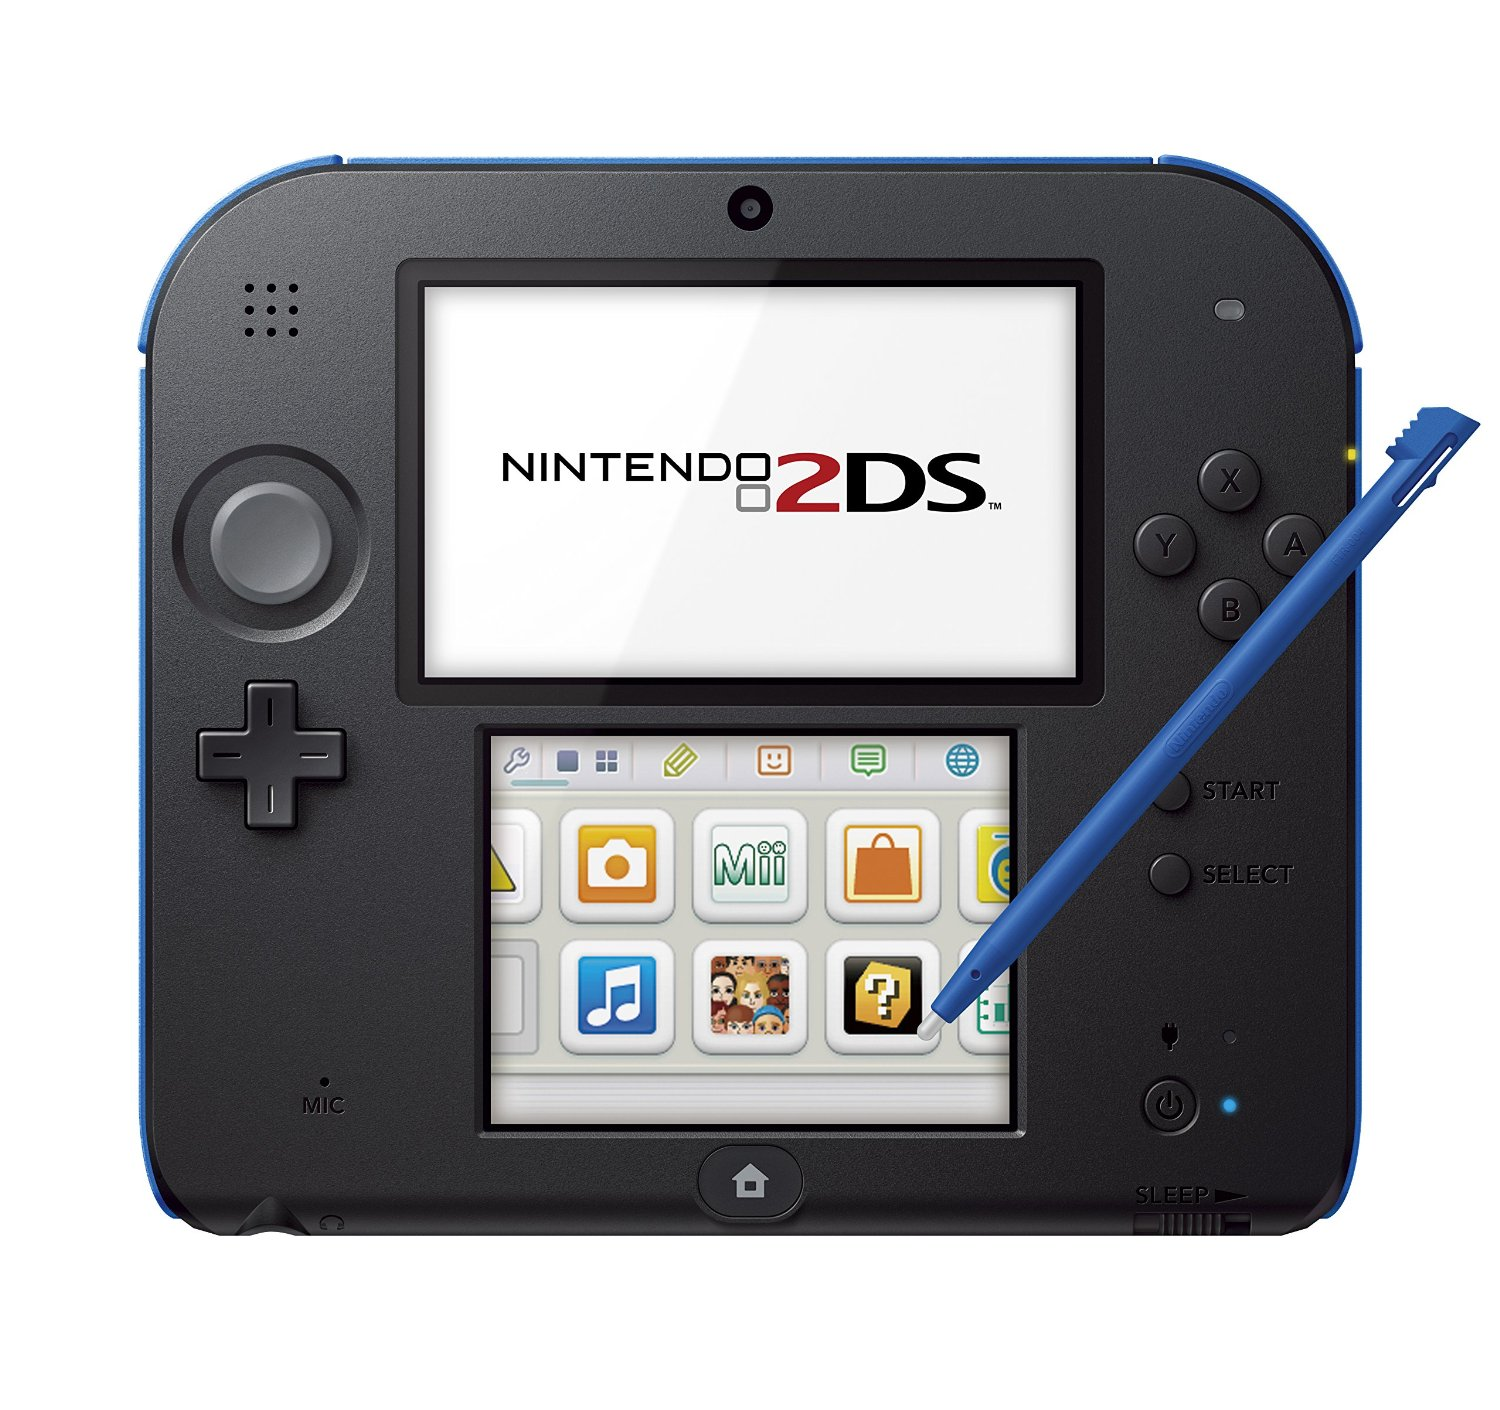 Refurbished Nintendo 2DS FTRSBM11 Mario Kart 7 Handheld Video Game Console, Electric Blue